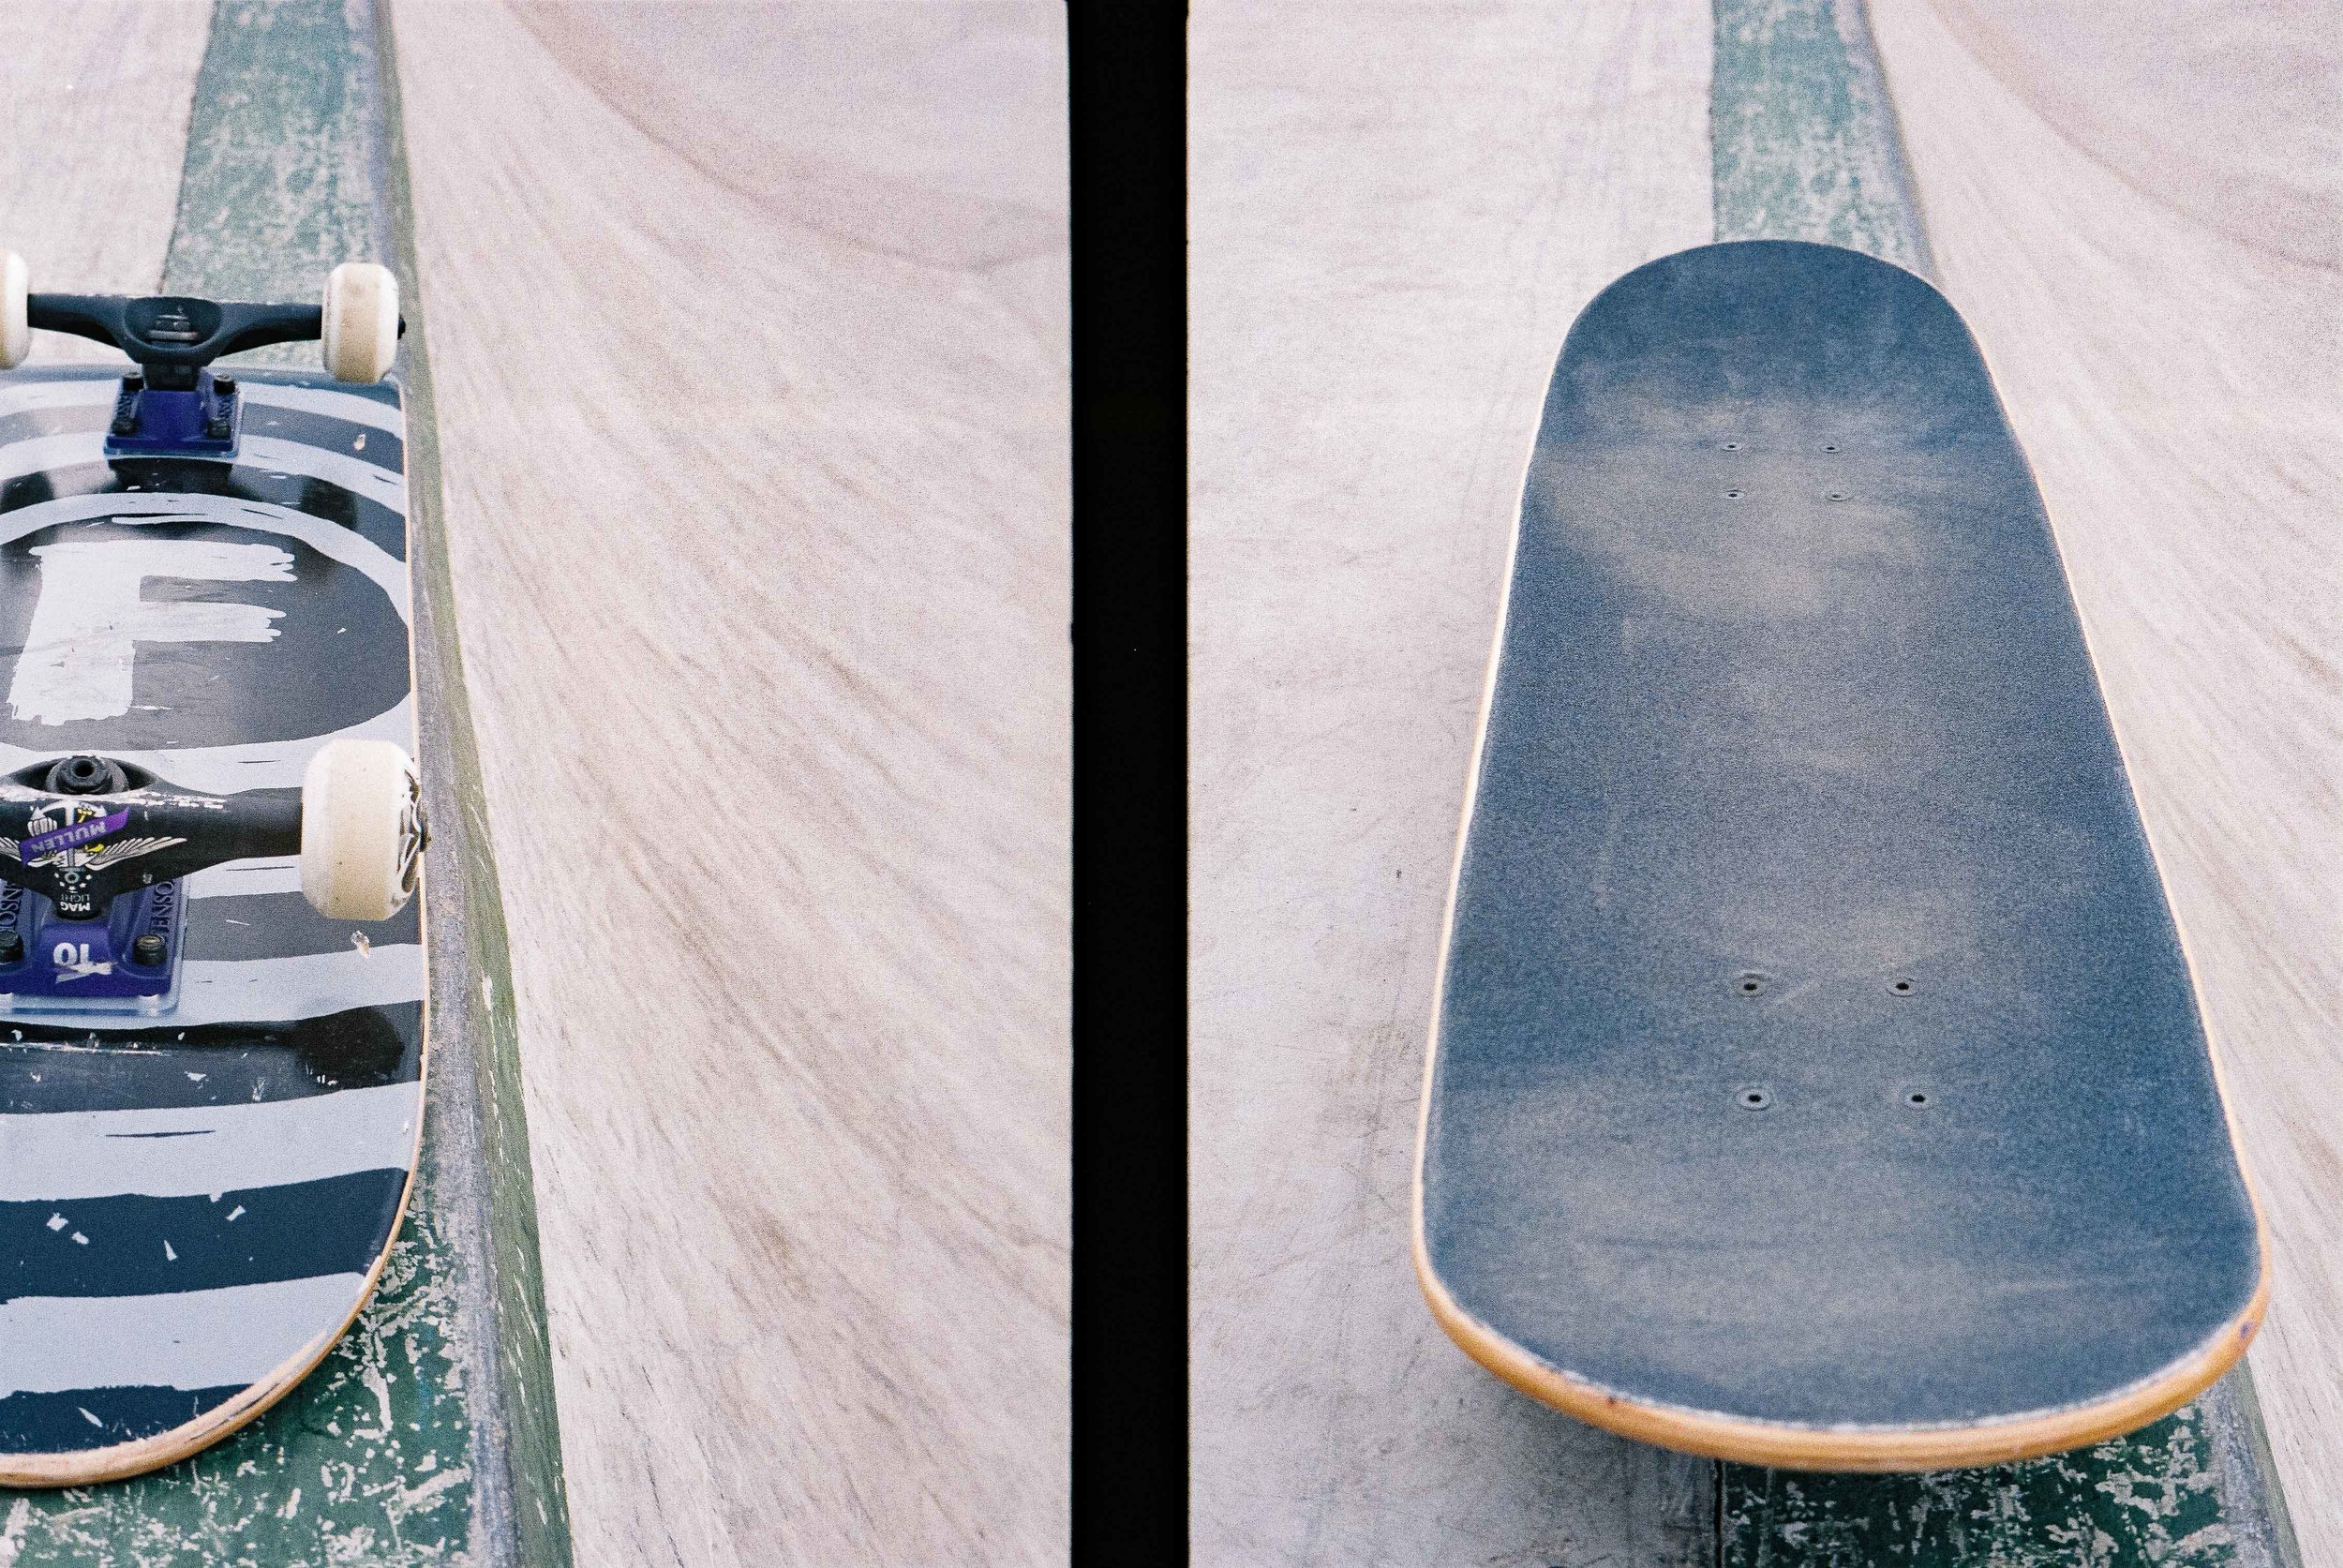 Skate and create, shot with Olympus Pen D3